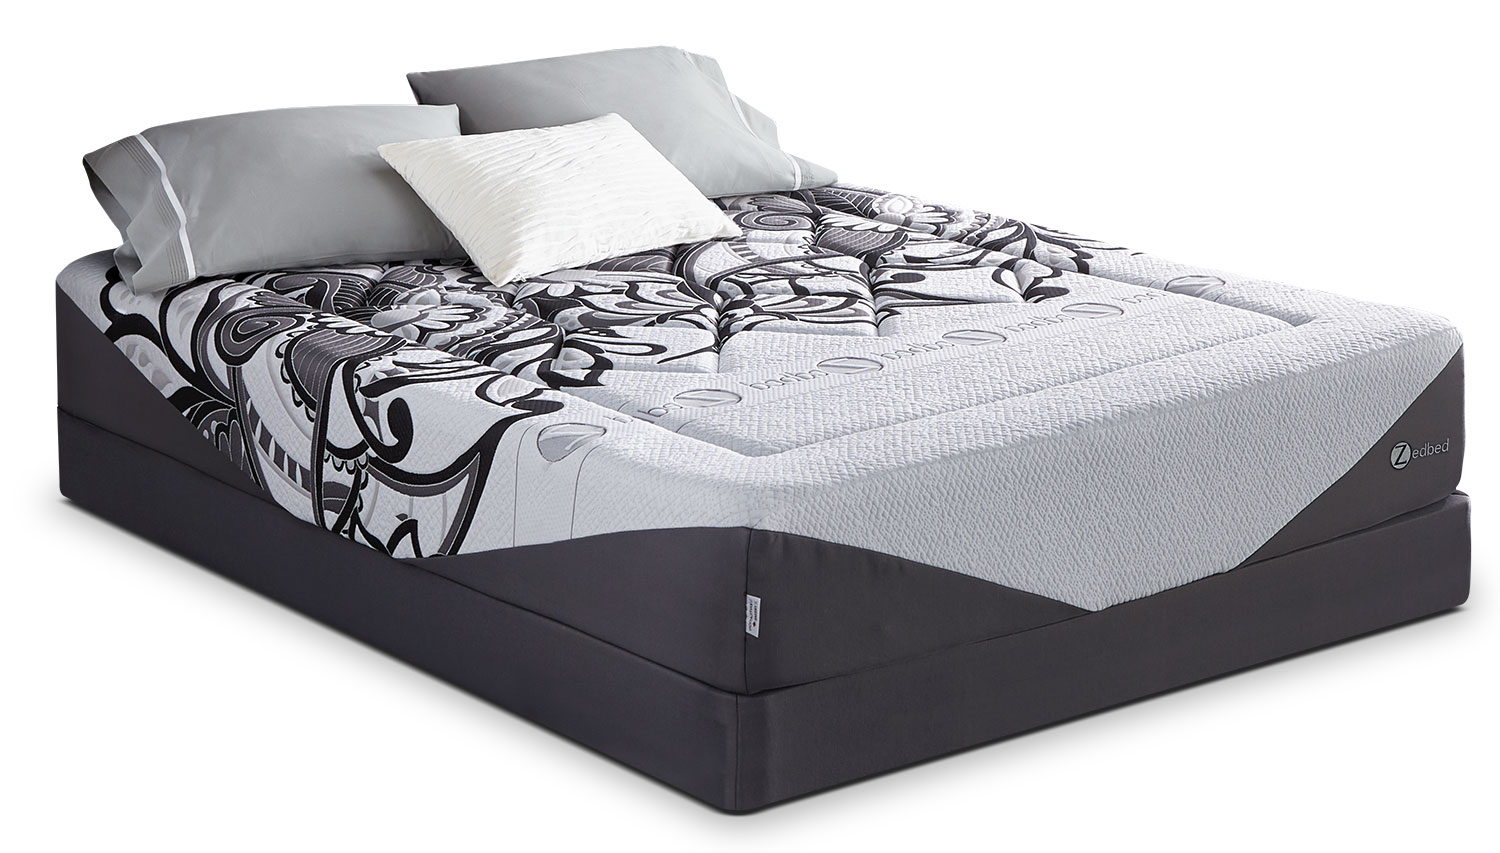 Mattresses and Bedding - Zedbed Vertuo Ultra Tight-Top Full Mattress Set